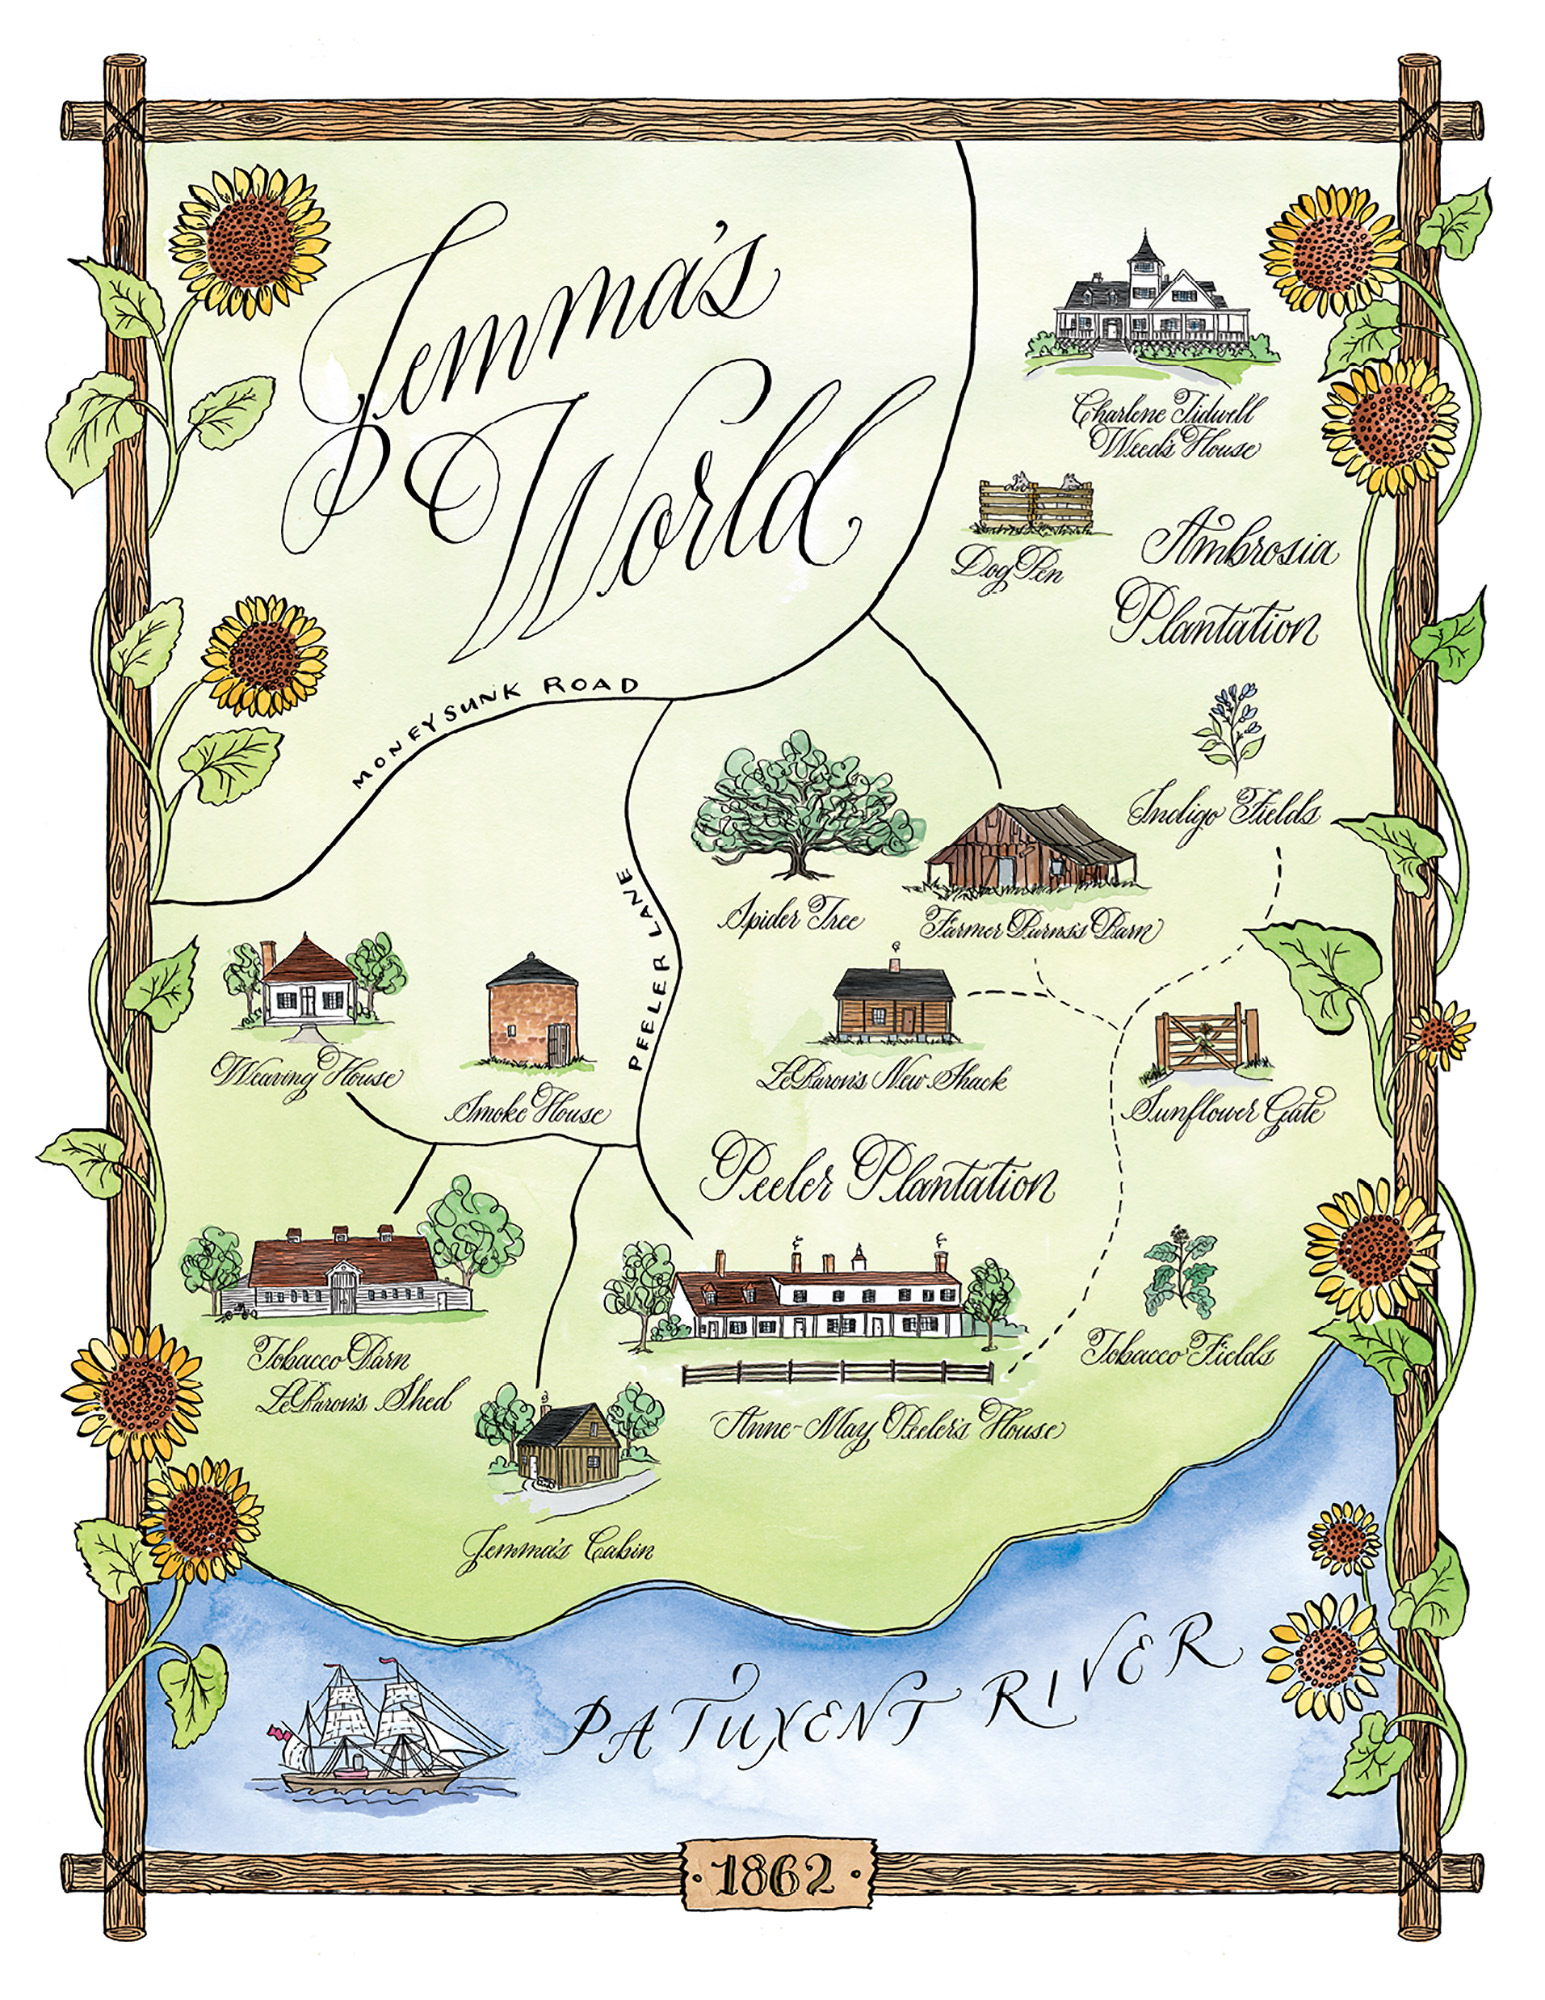 An Illustrated Map of Jemma's World from Sunflower Sisters